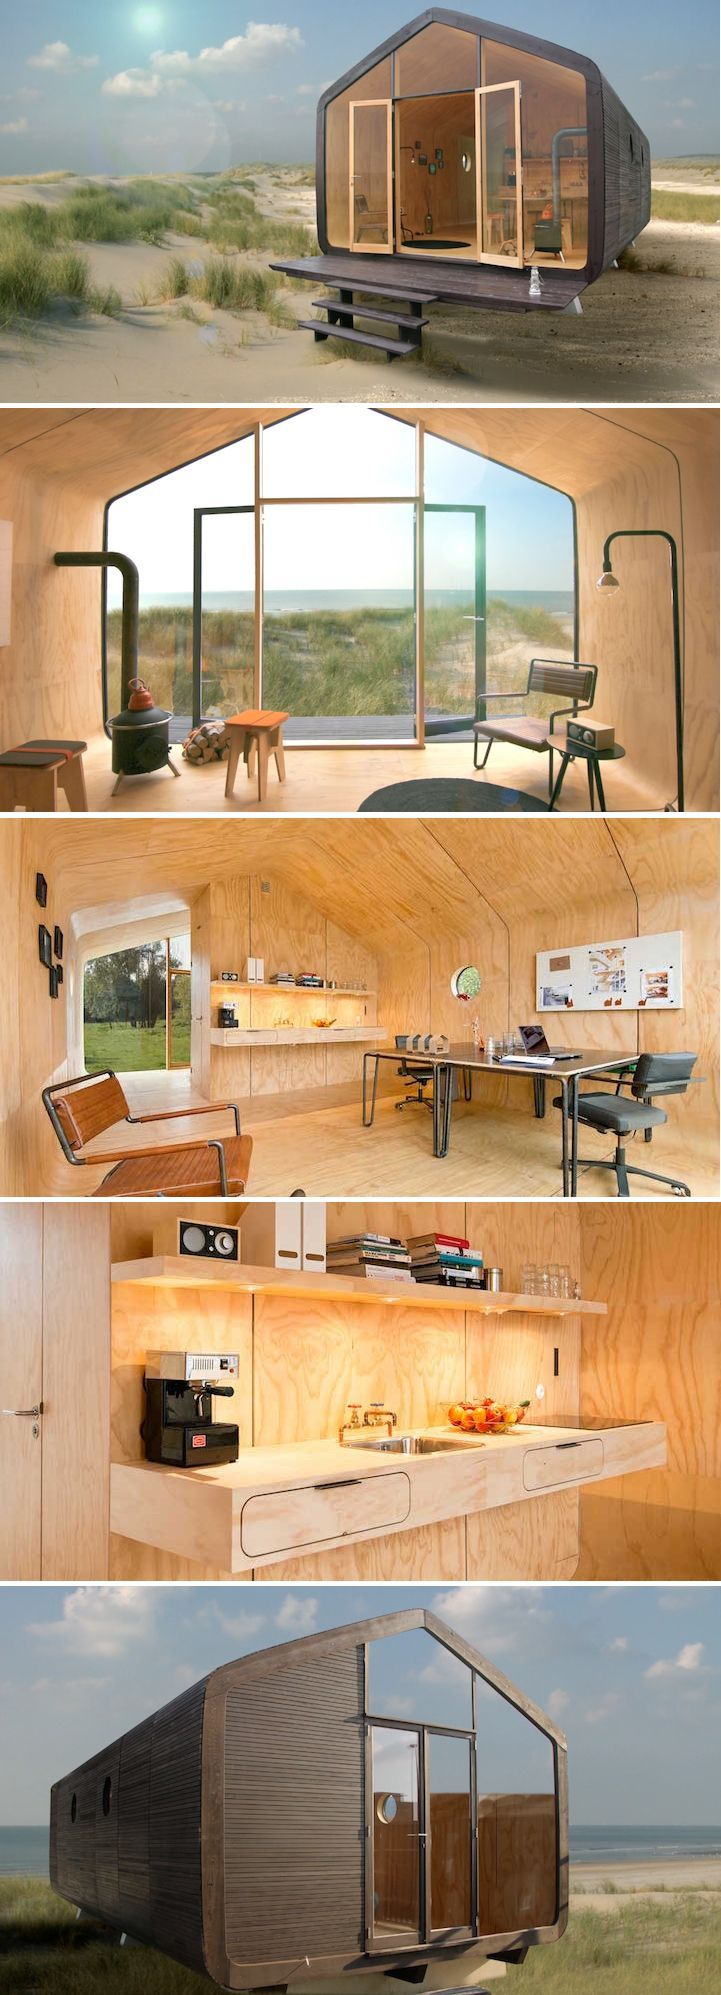 Dutch designers have managed to create sturdy, sustainable houses out of cardboard.